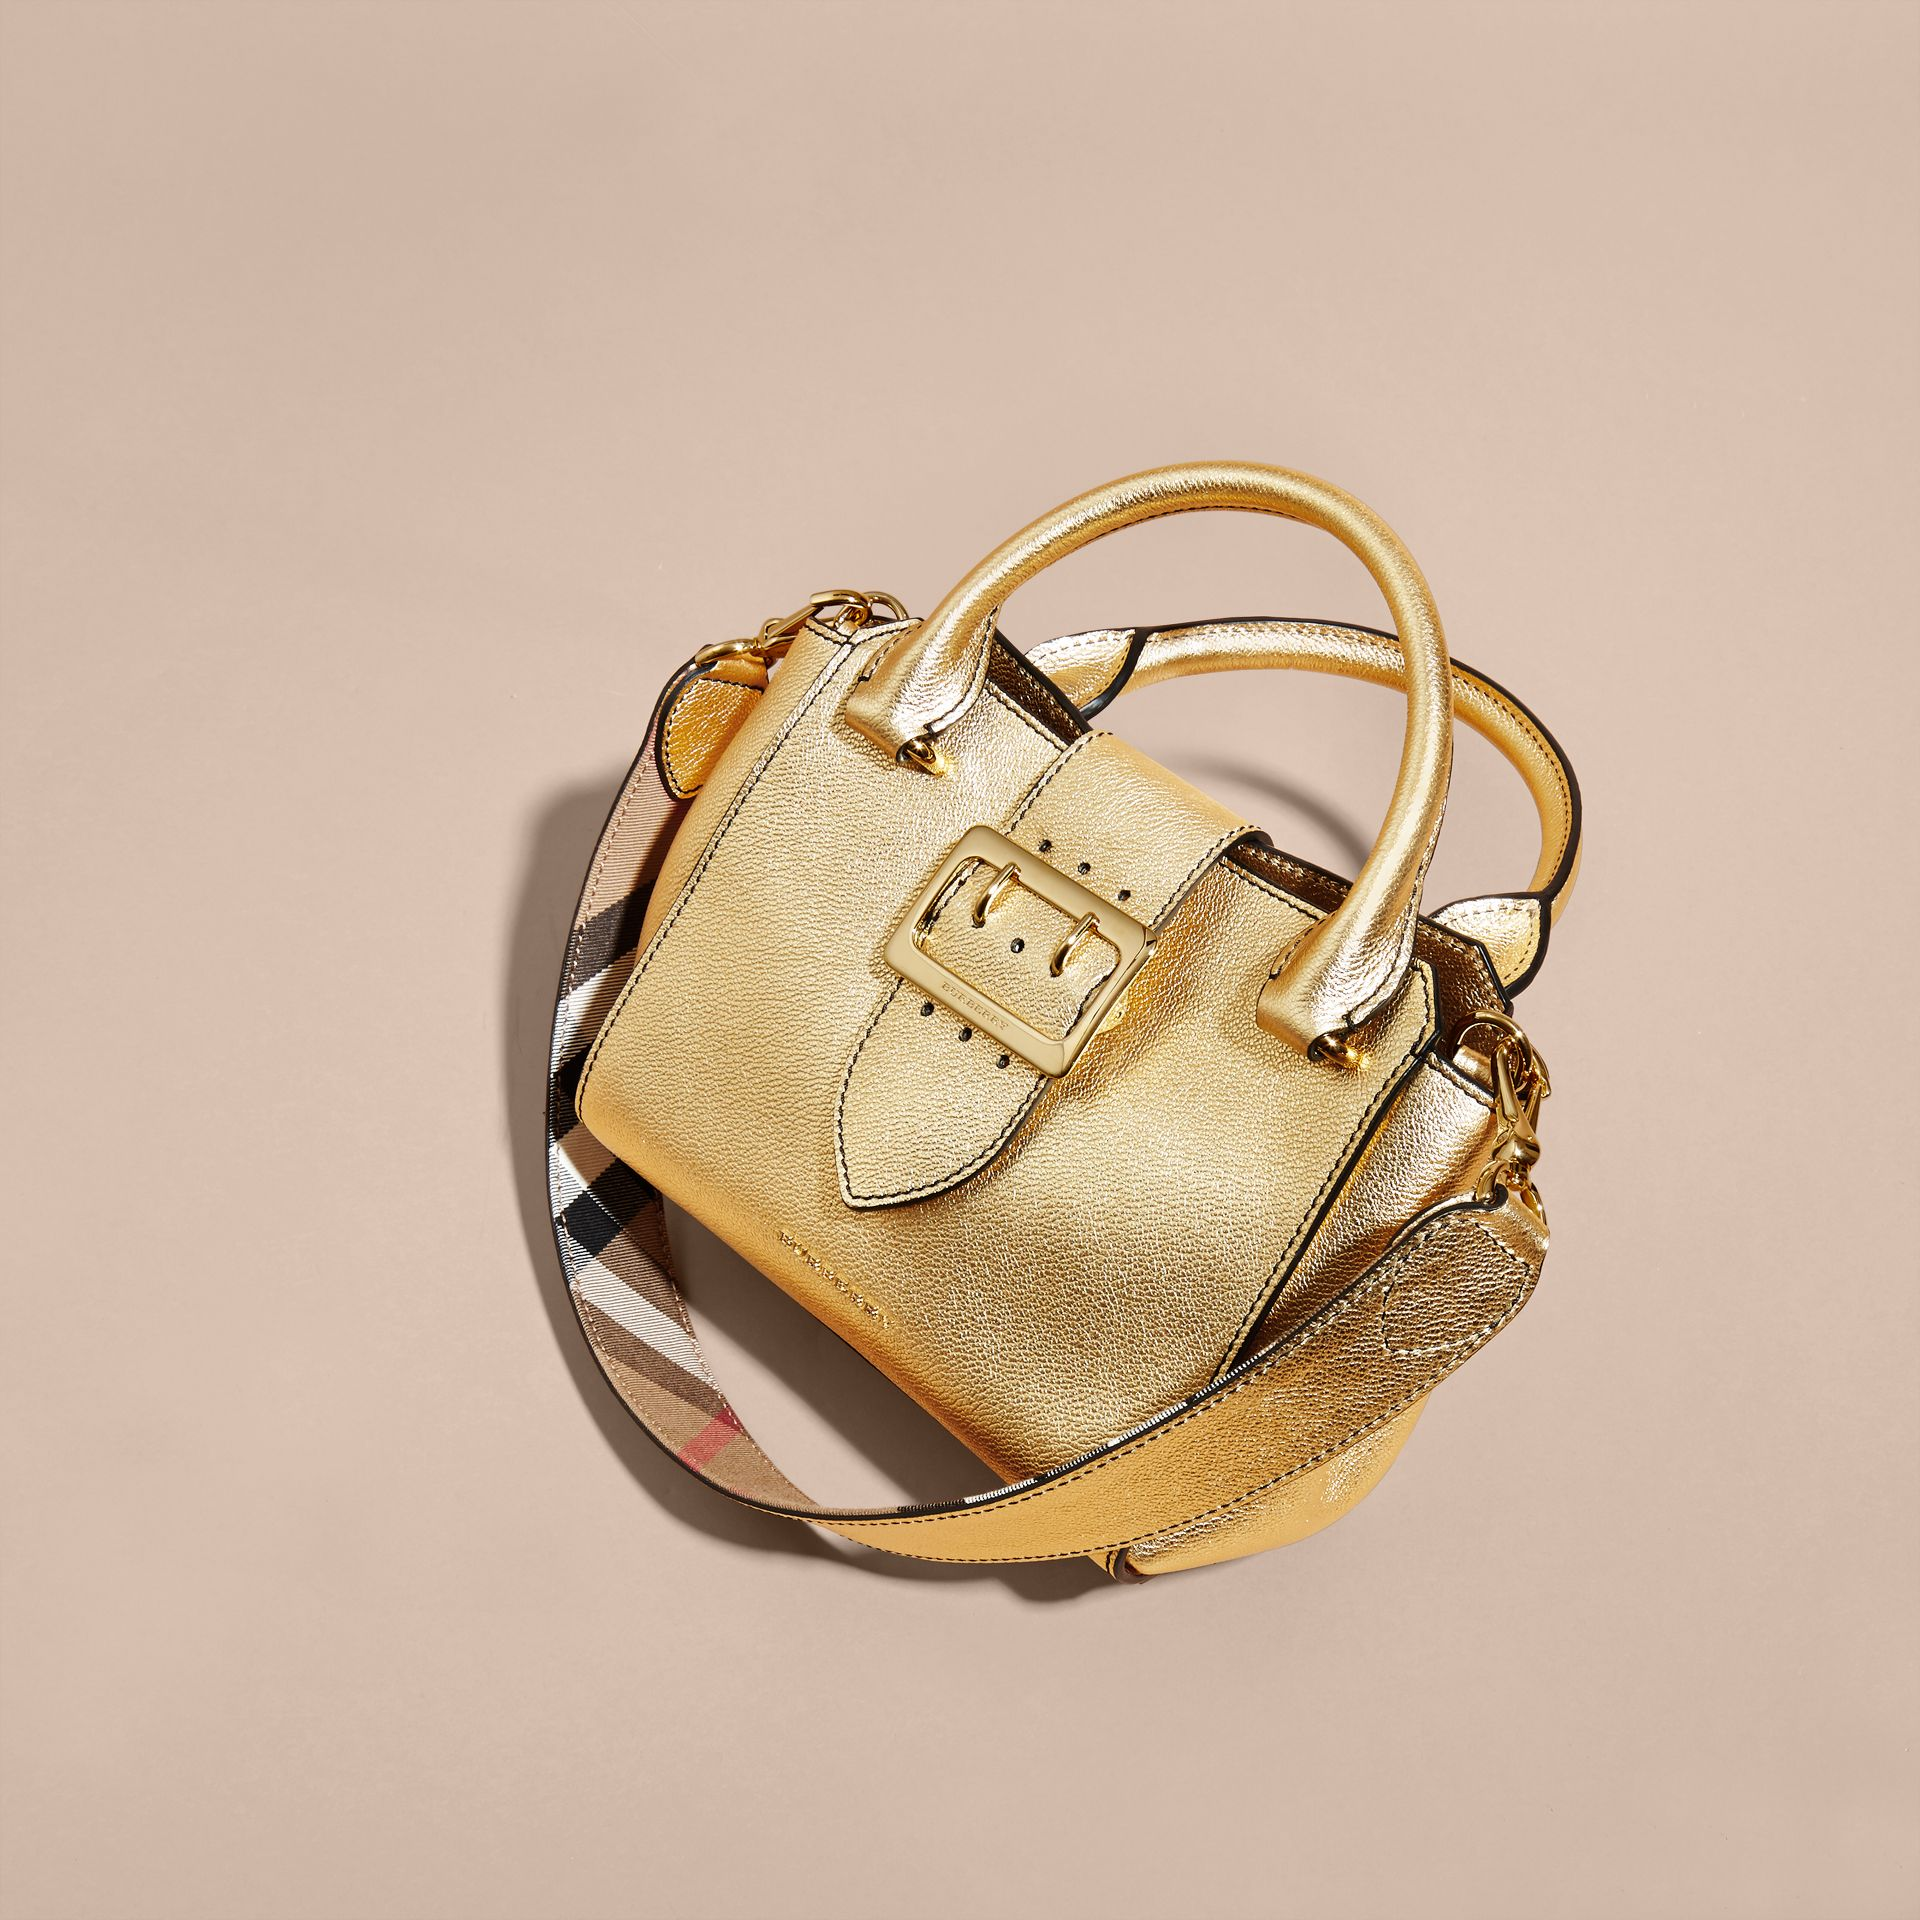 Gold The Small Buckle Tote in Metallic Leather Gold - gallery image 4